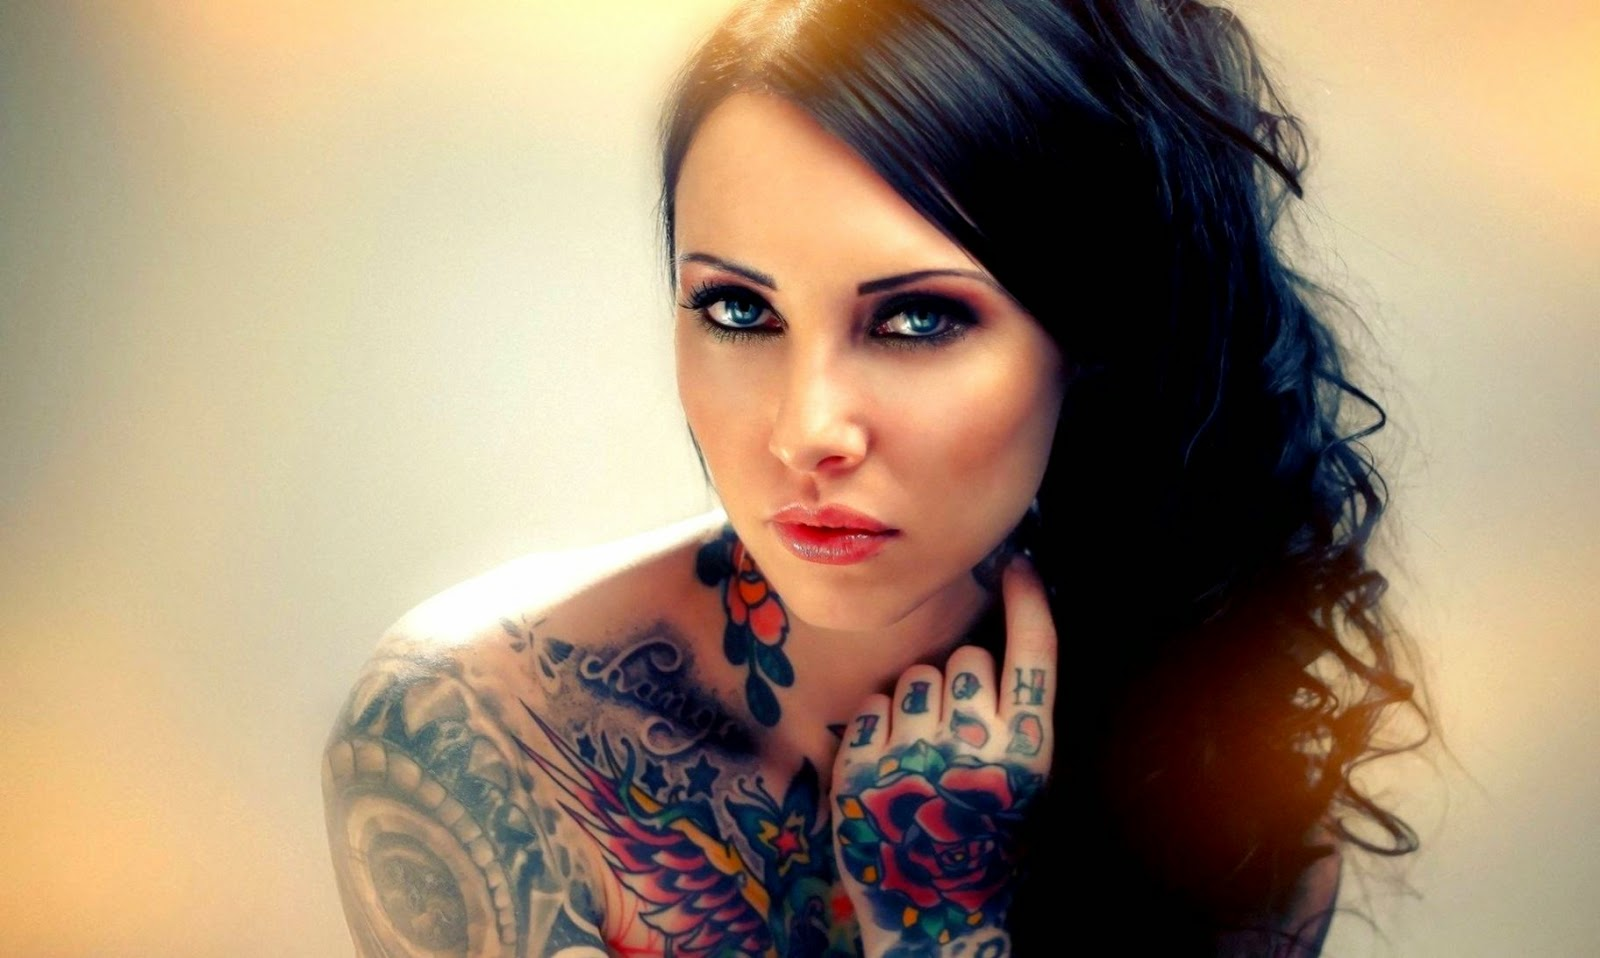 Girls With Tattoo Wallpaperhelenasaurus